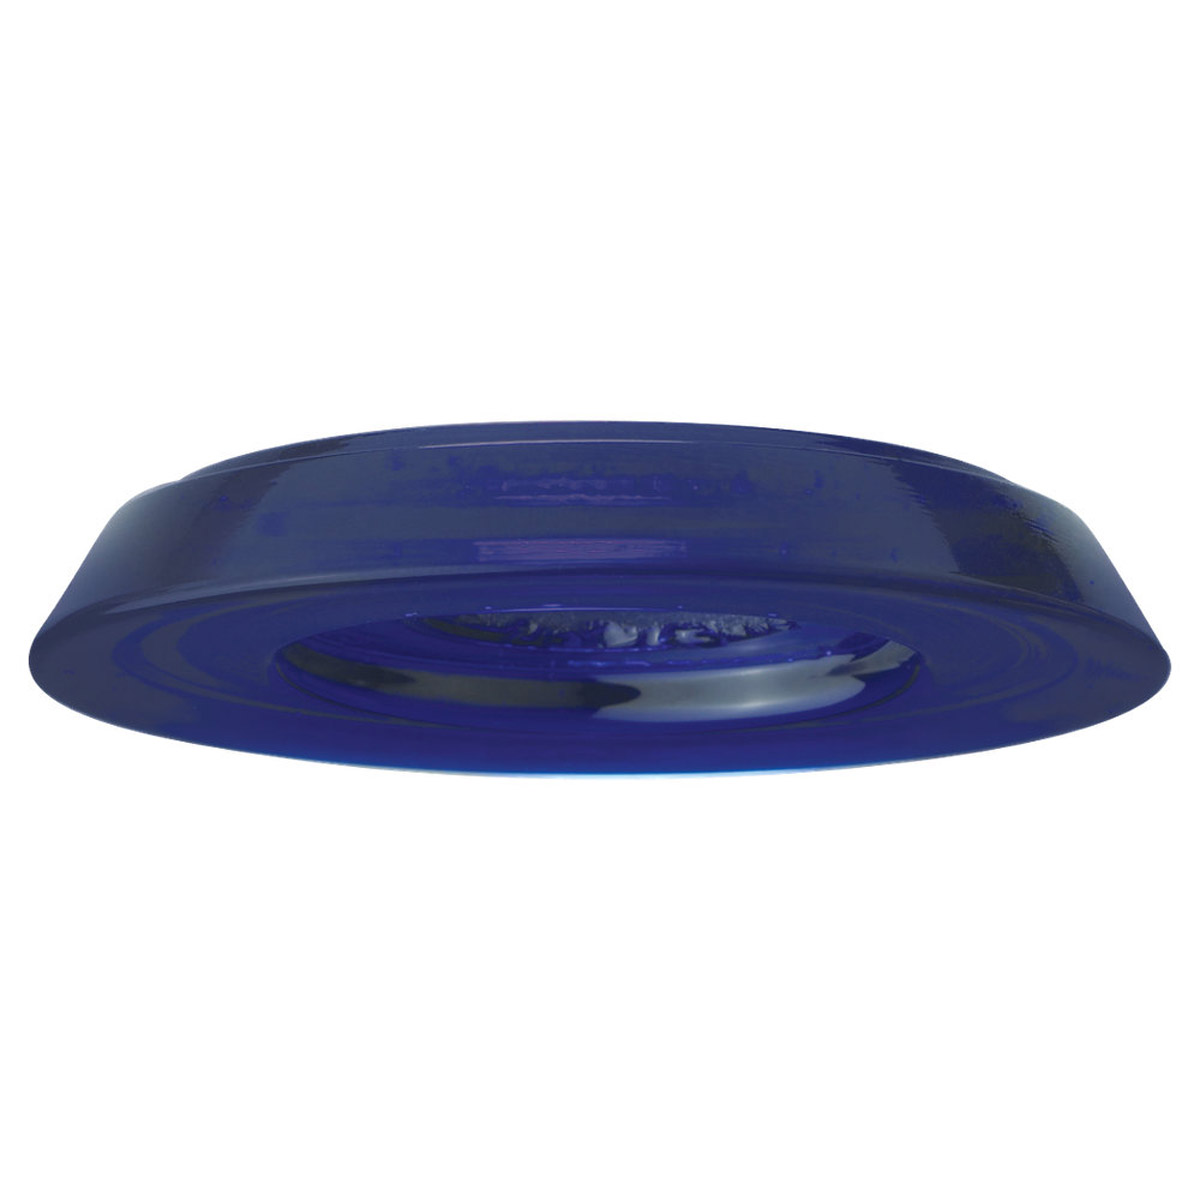 Sea Gull Lighting Urban Loft Optional Glass Disk in Cobalt Blue 94340-657